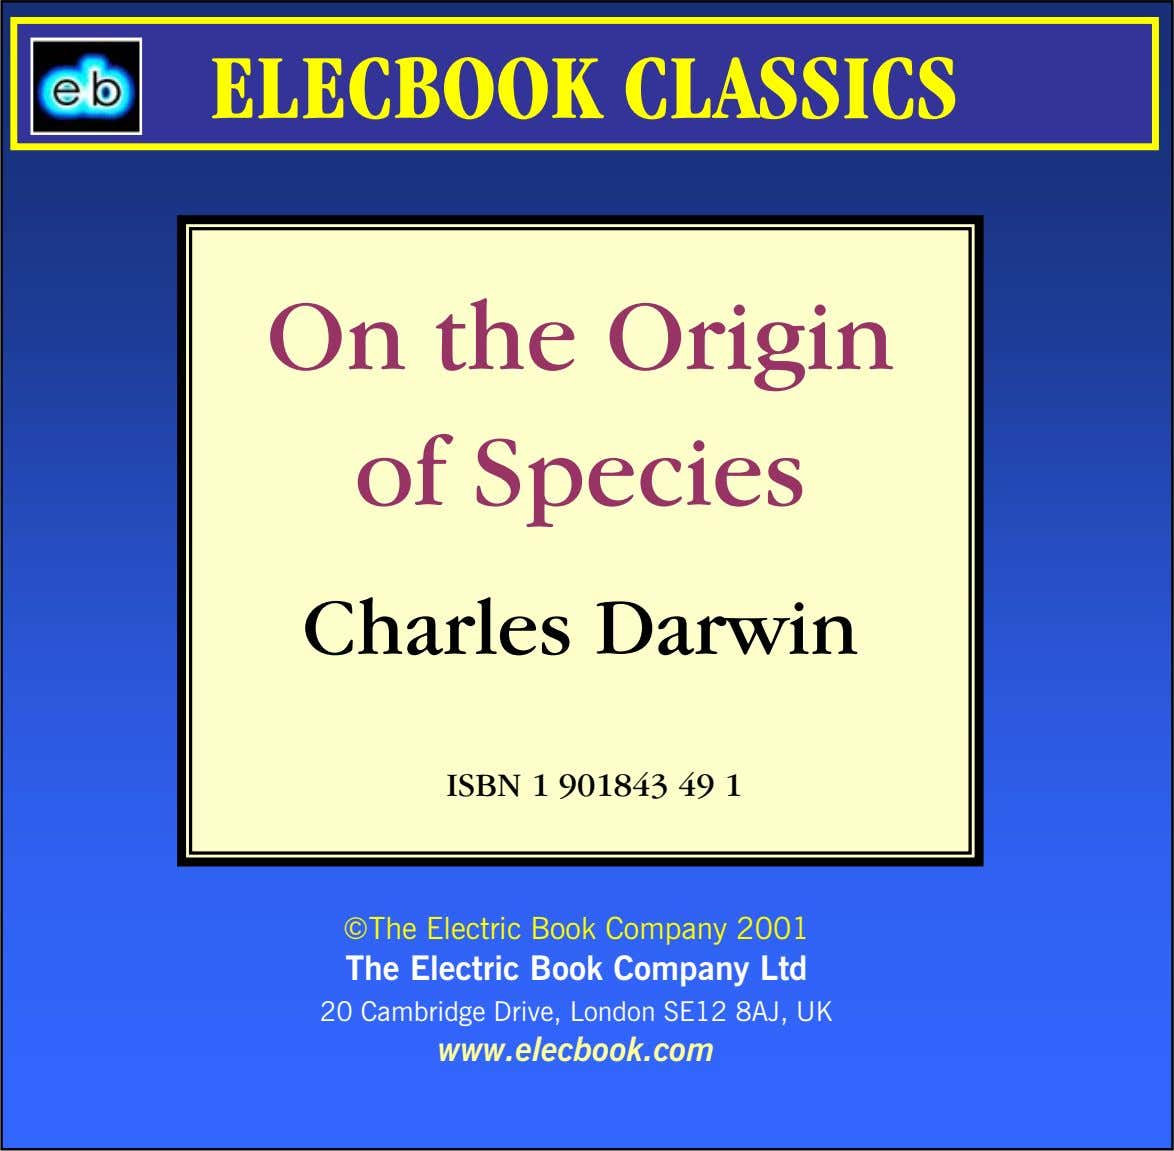 ELECBOOK CLASSICS On the Origin of Species Charles Darwin ISBN 1 901843 49 1 ©The